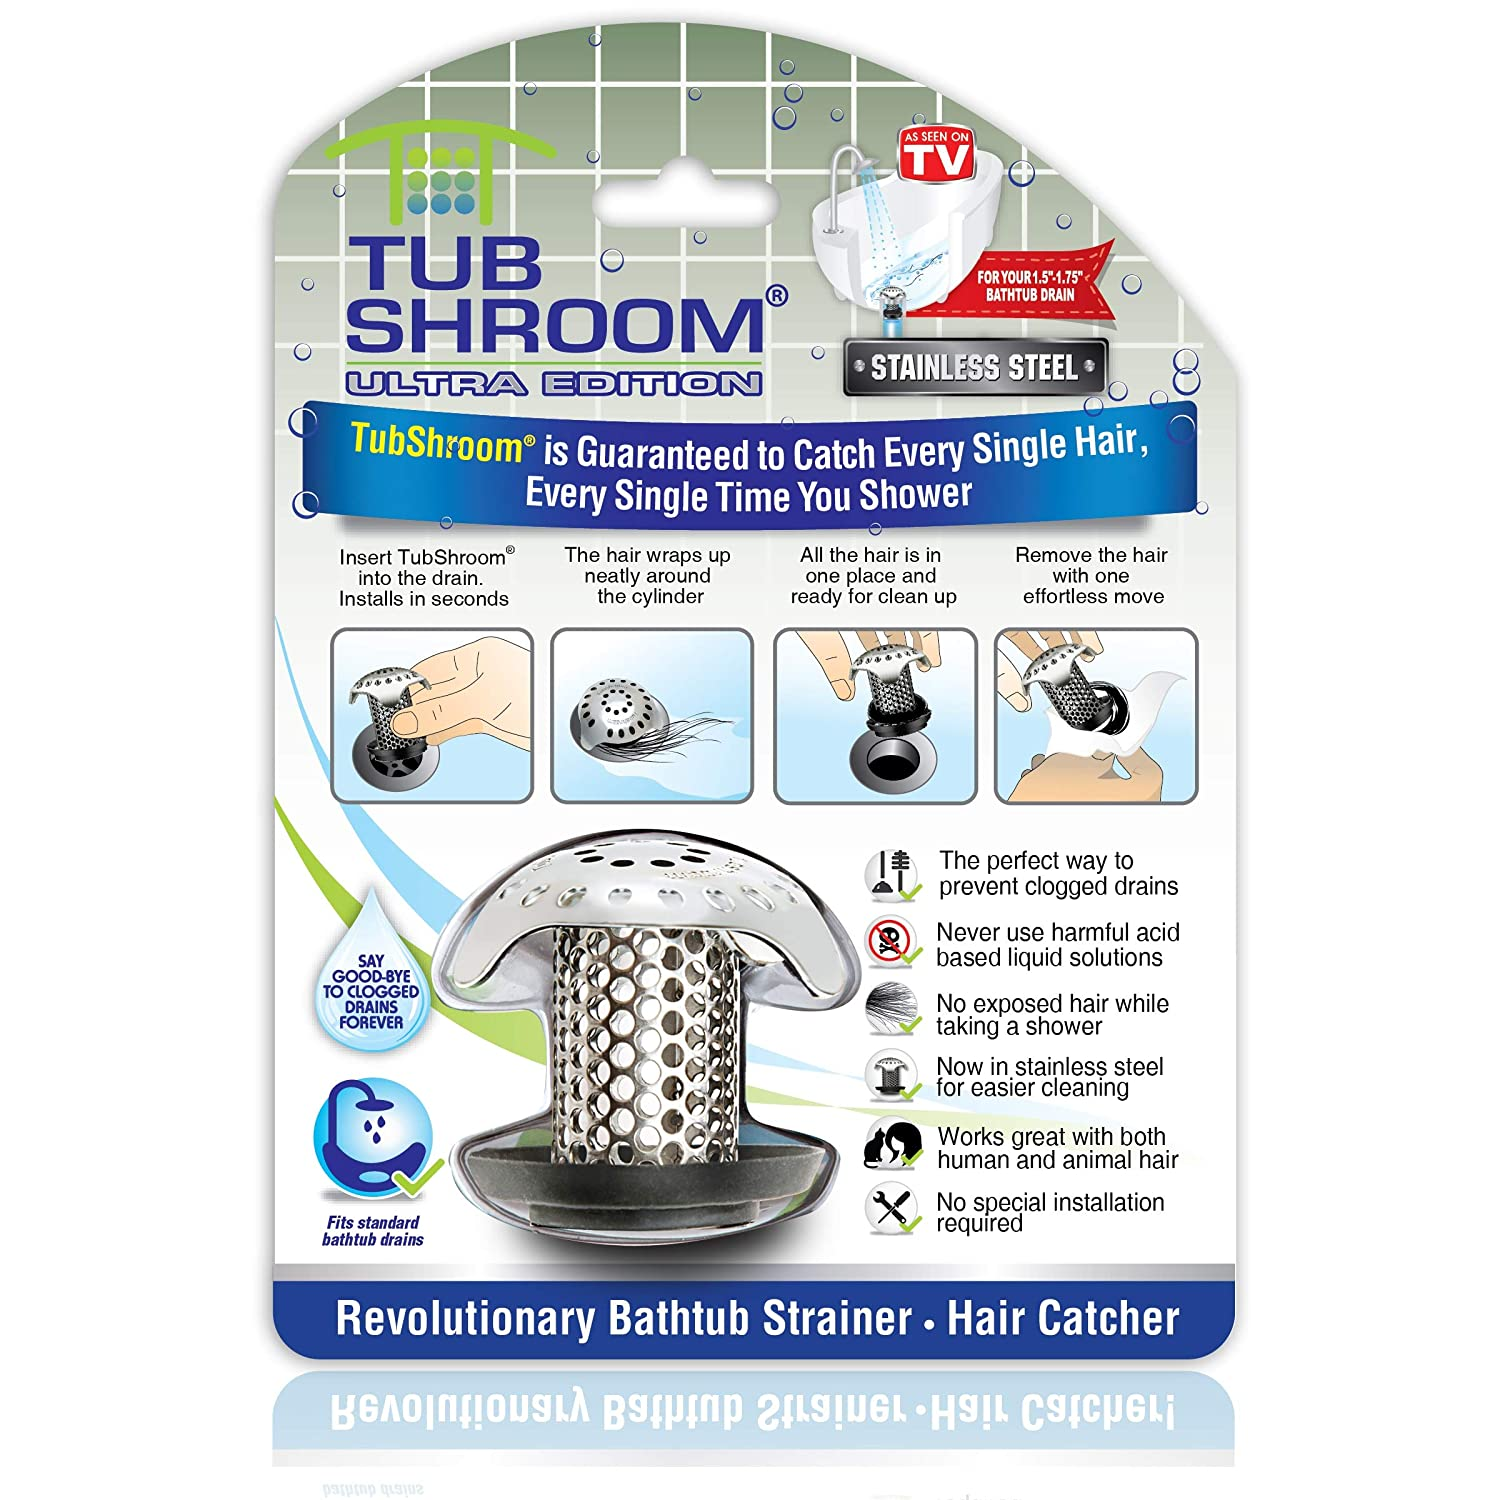 TubShroom Ultra Revolutionary Bath Tub Drain Protector Hair Catcher/Strainer/Snare Stainless Steel, Single Pack